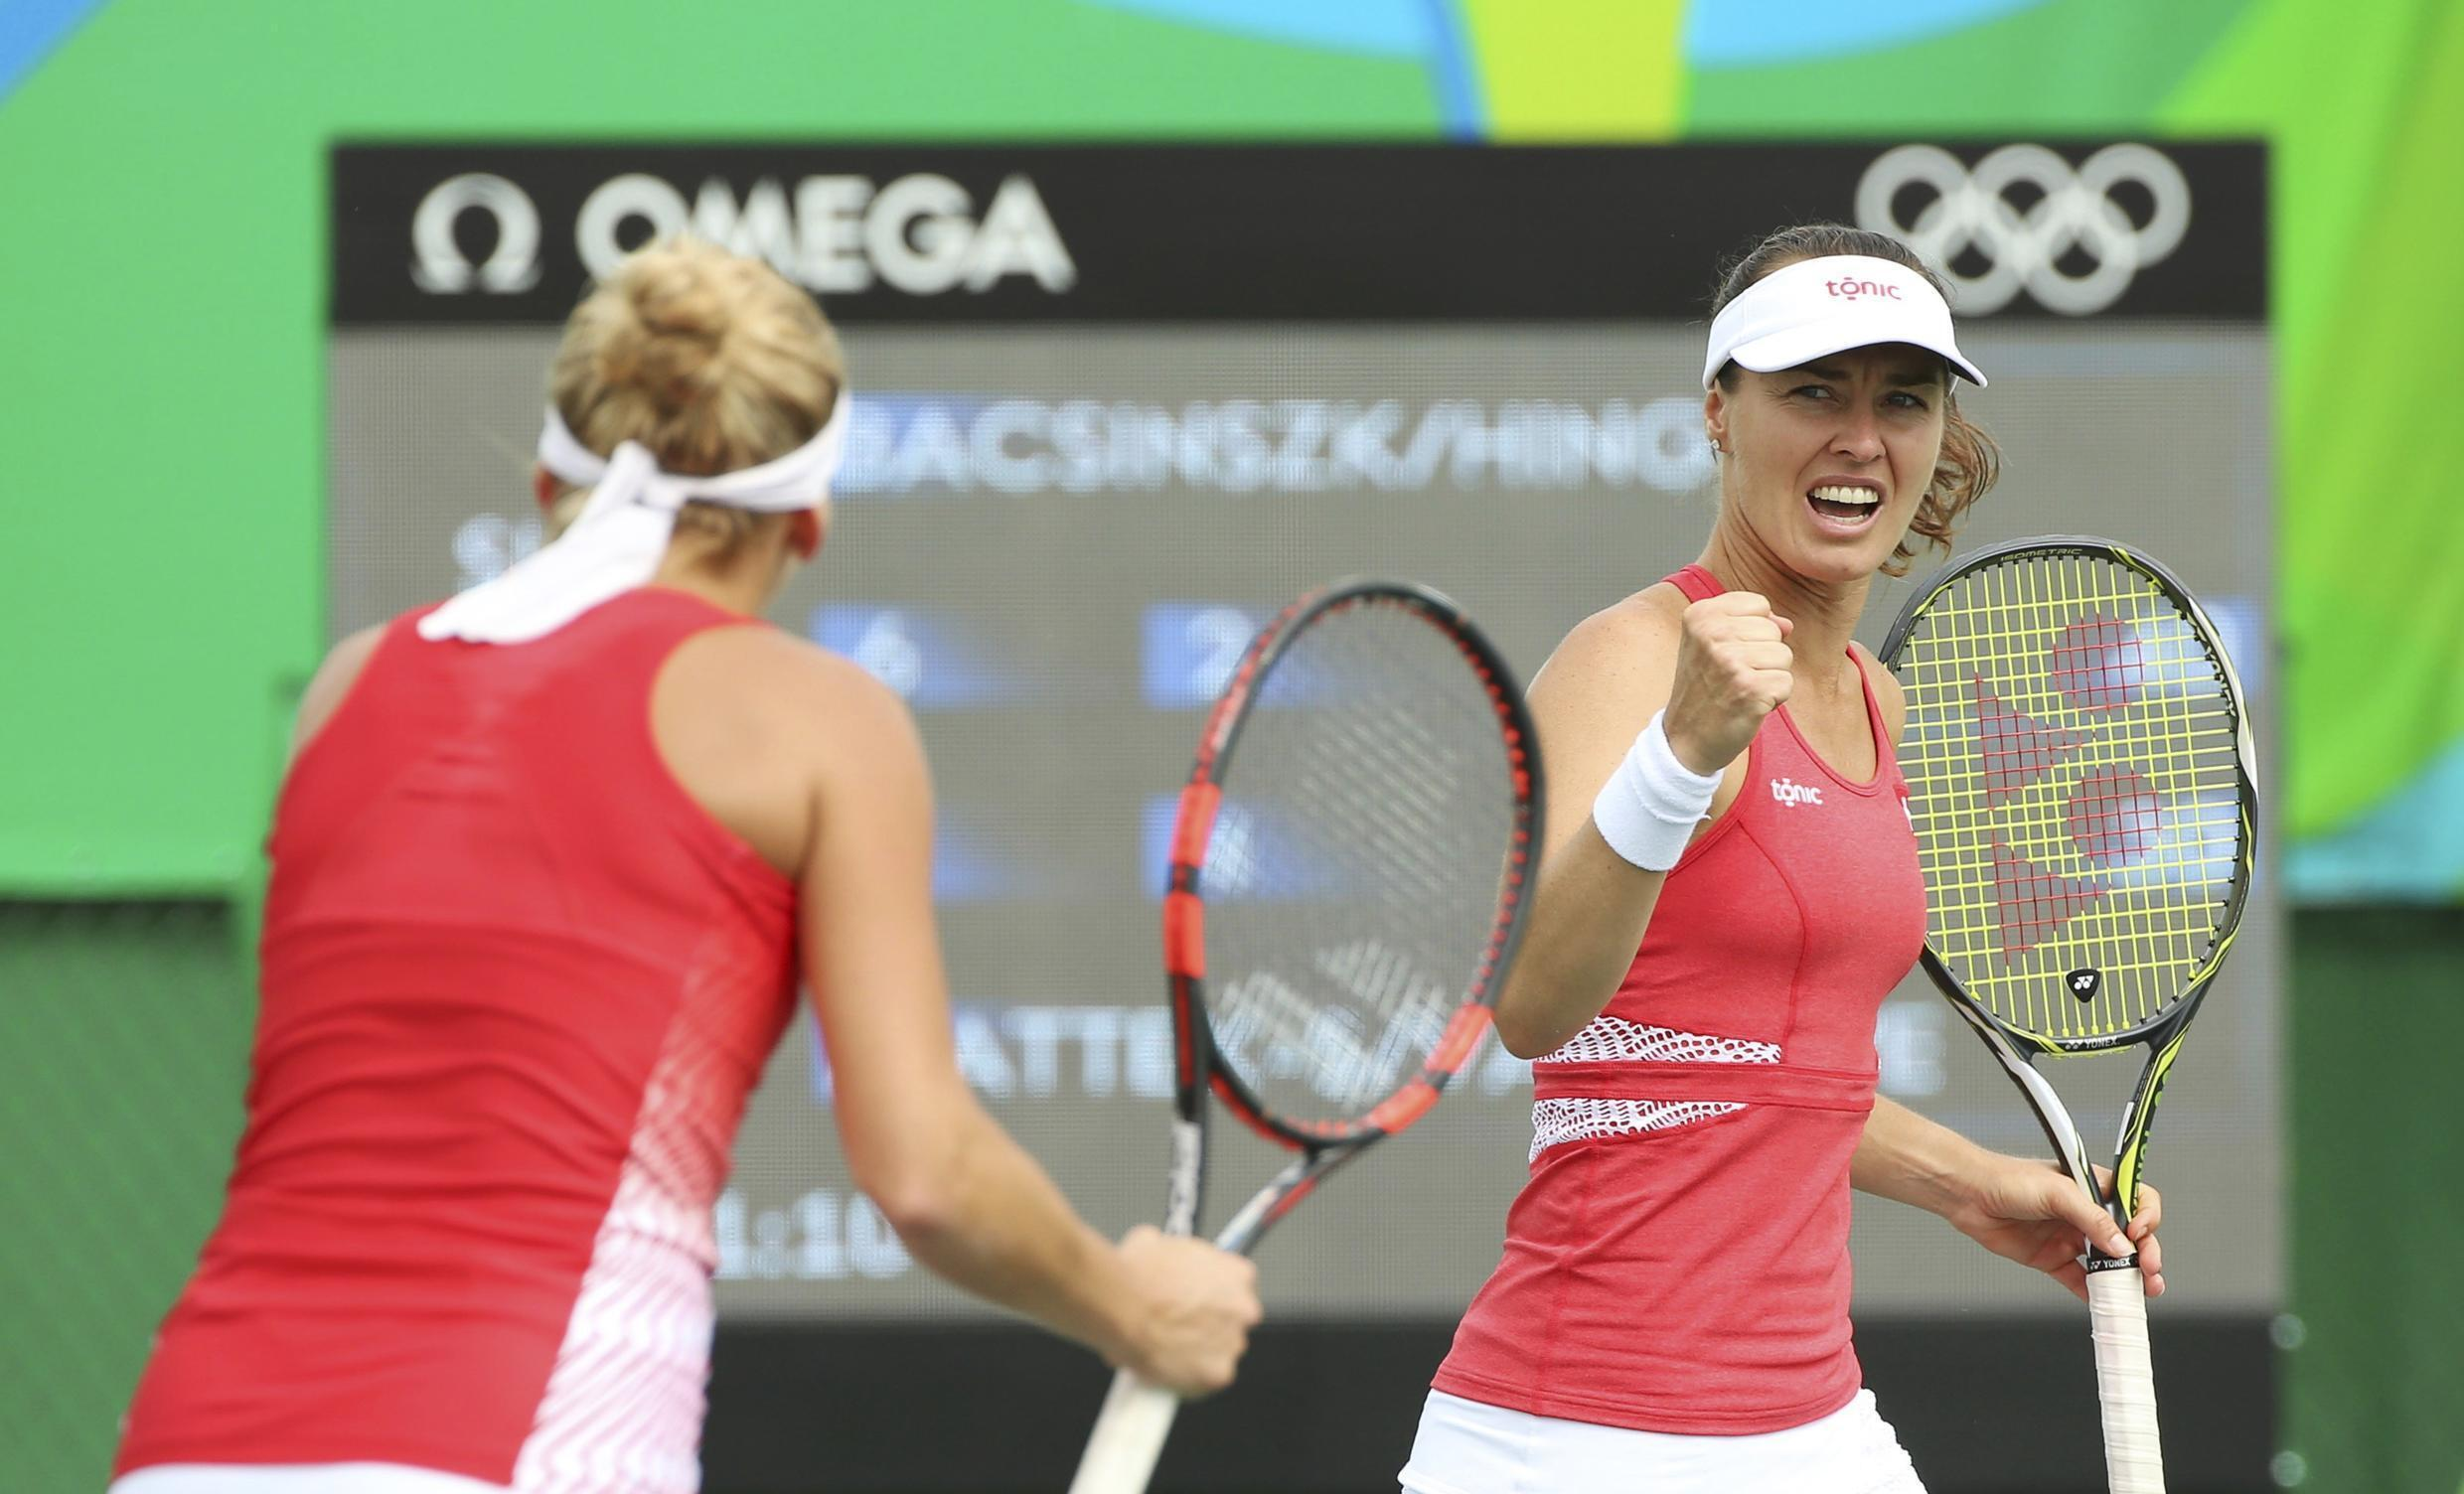 Martina Hingis (right) in action at the Rio Olympics. Hingis and Sania Mirza ended their doubles partnership.